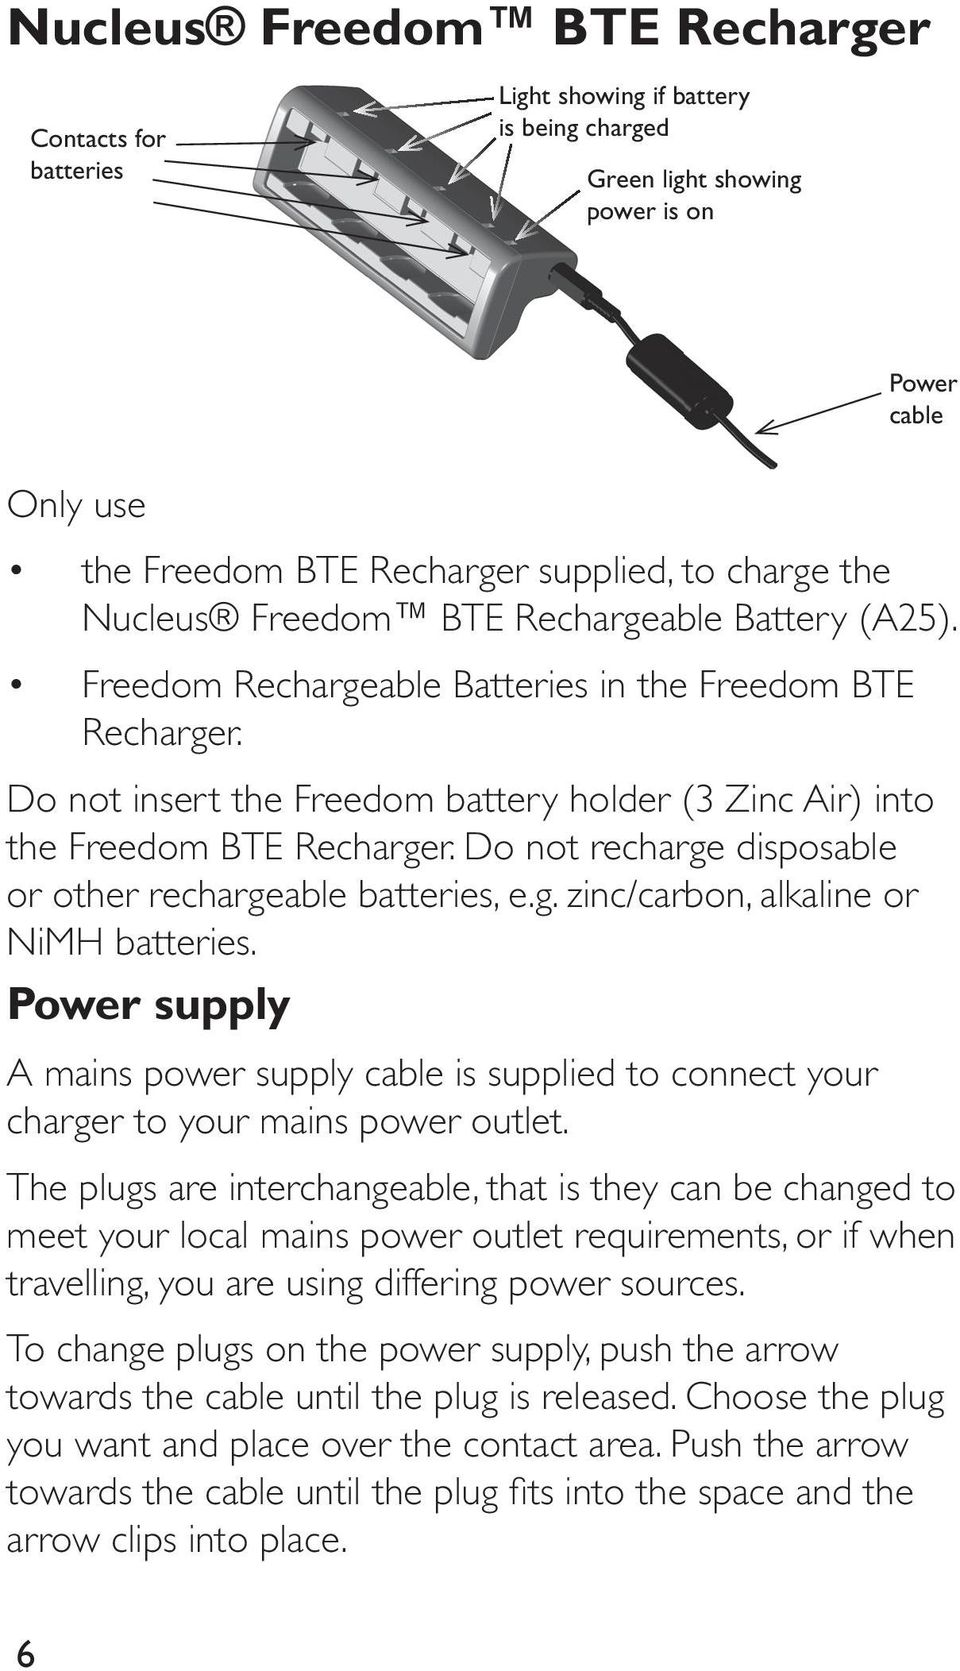 Do not insert the Freedom battery holder (3 Zinc Air) into the Freedom BTE Recharger. Do not recharge disposable or other rechargeable batteries, e.g. zinc/carbon, alkaline or NiMH batteries.